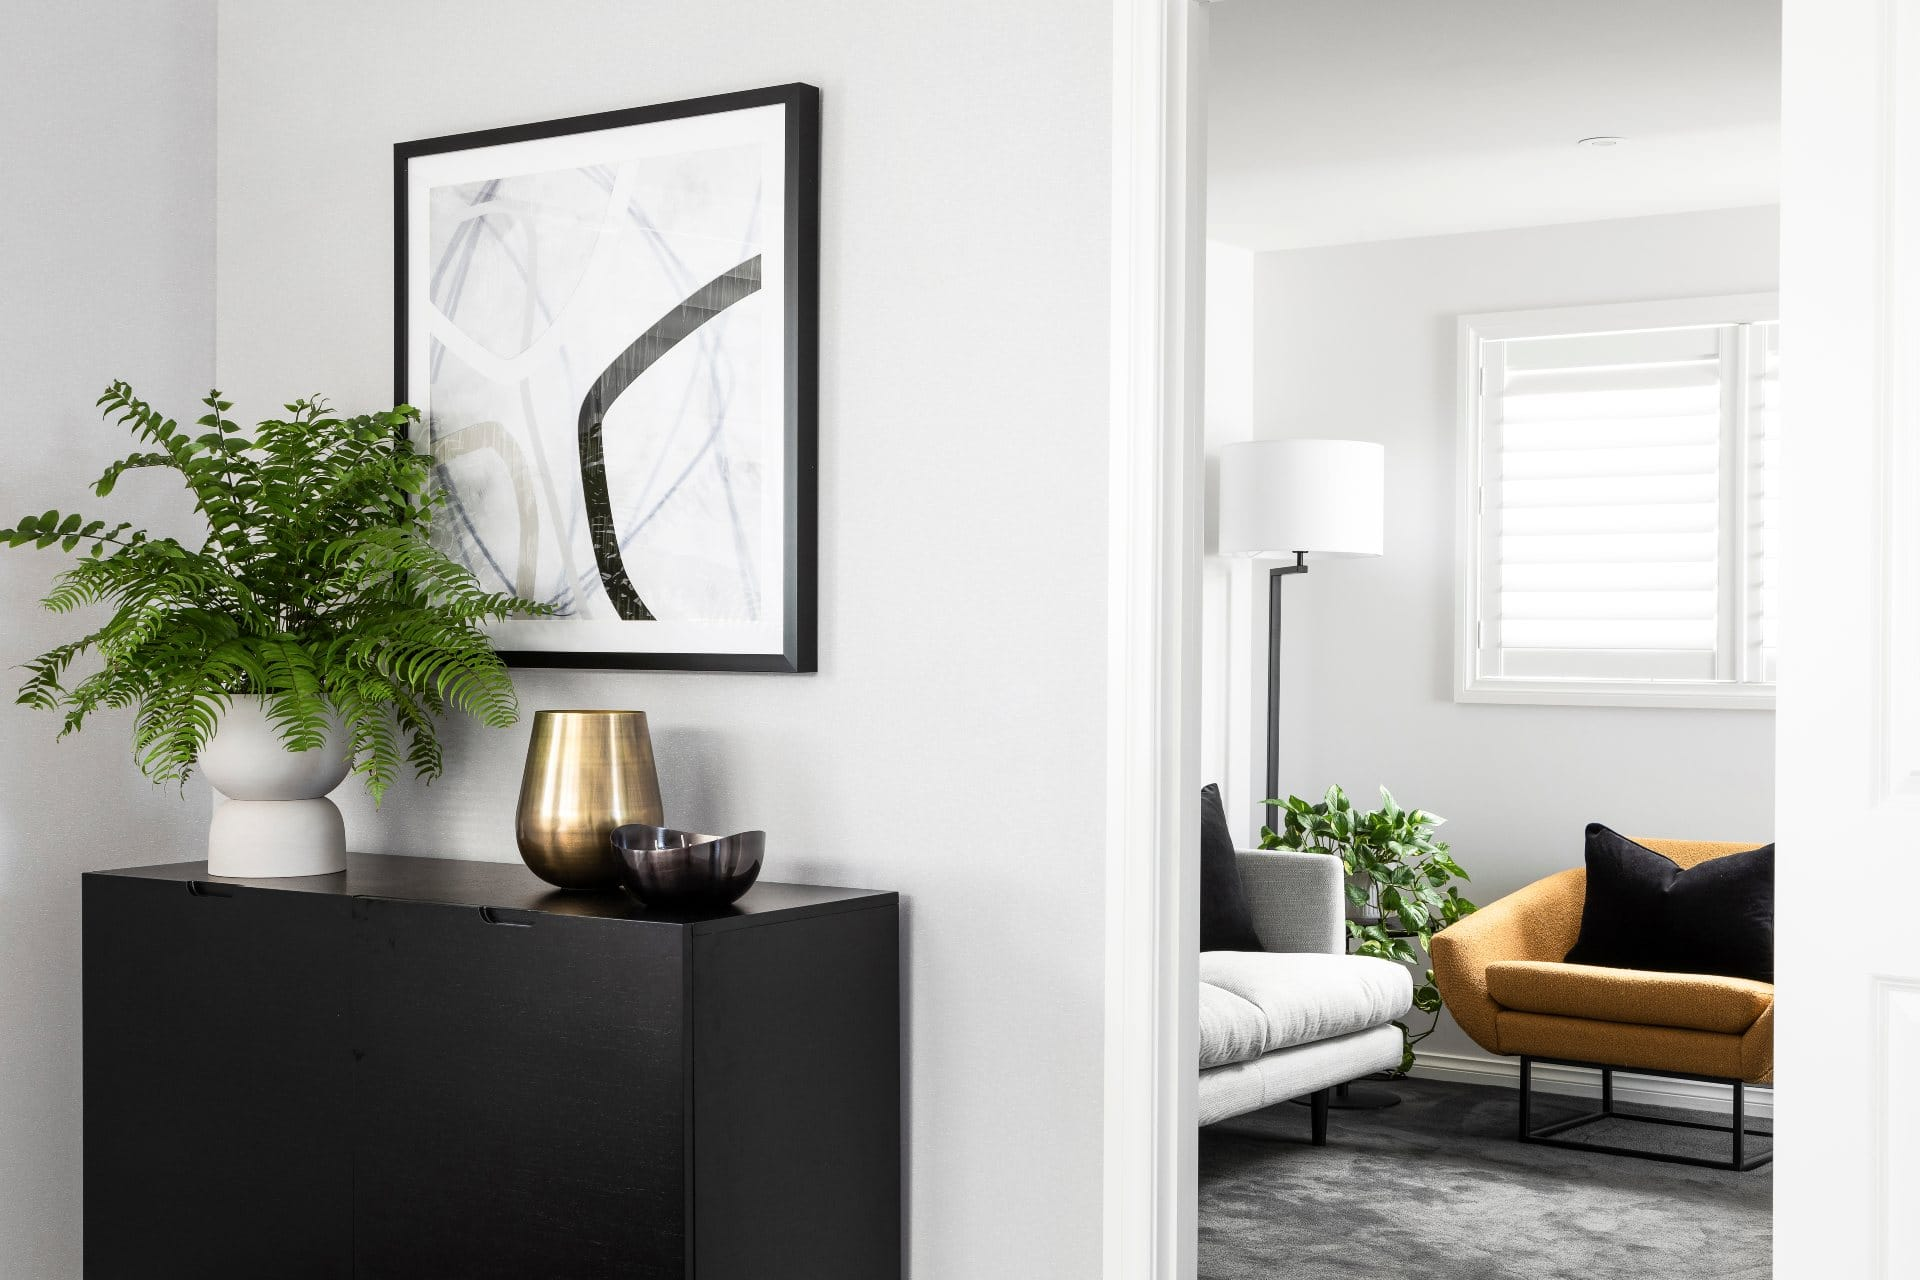 black luxe sideboard from brosa with mustard armchair from horgans in chic master bedroom